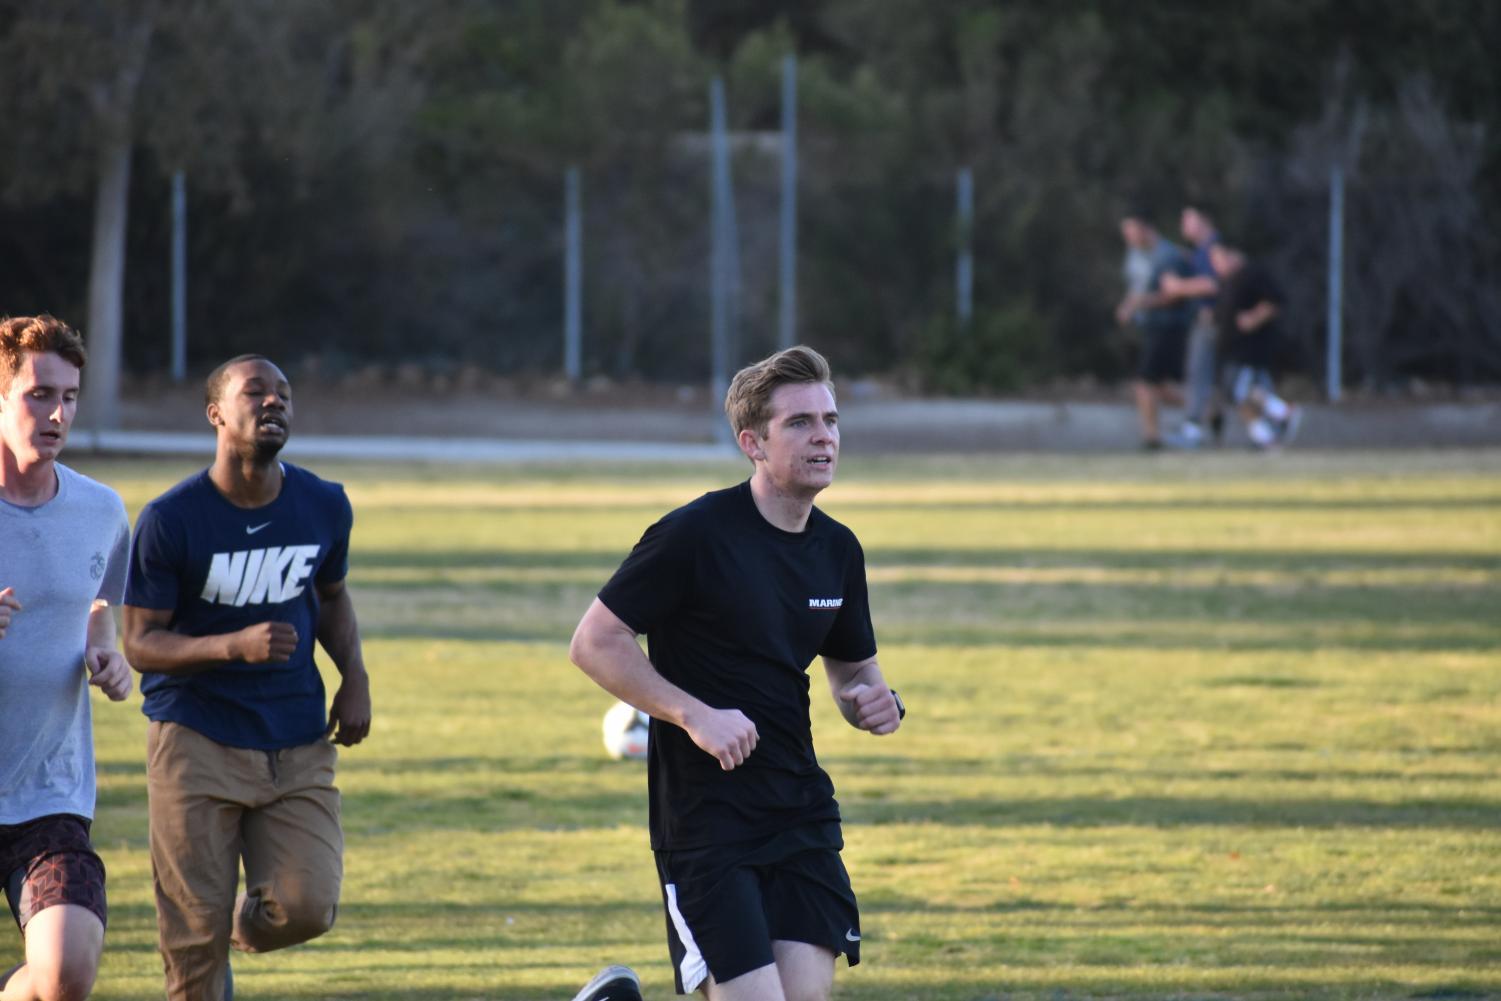 Senior Grant Hughes finishes running a lap around the field. Recruits like Grant complete rigorous training to be eligible to serve.